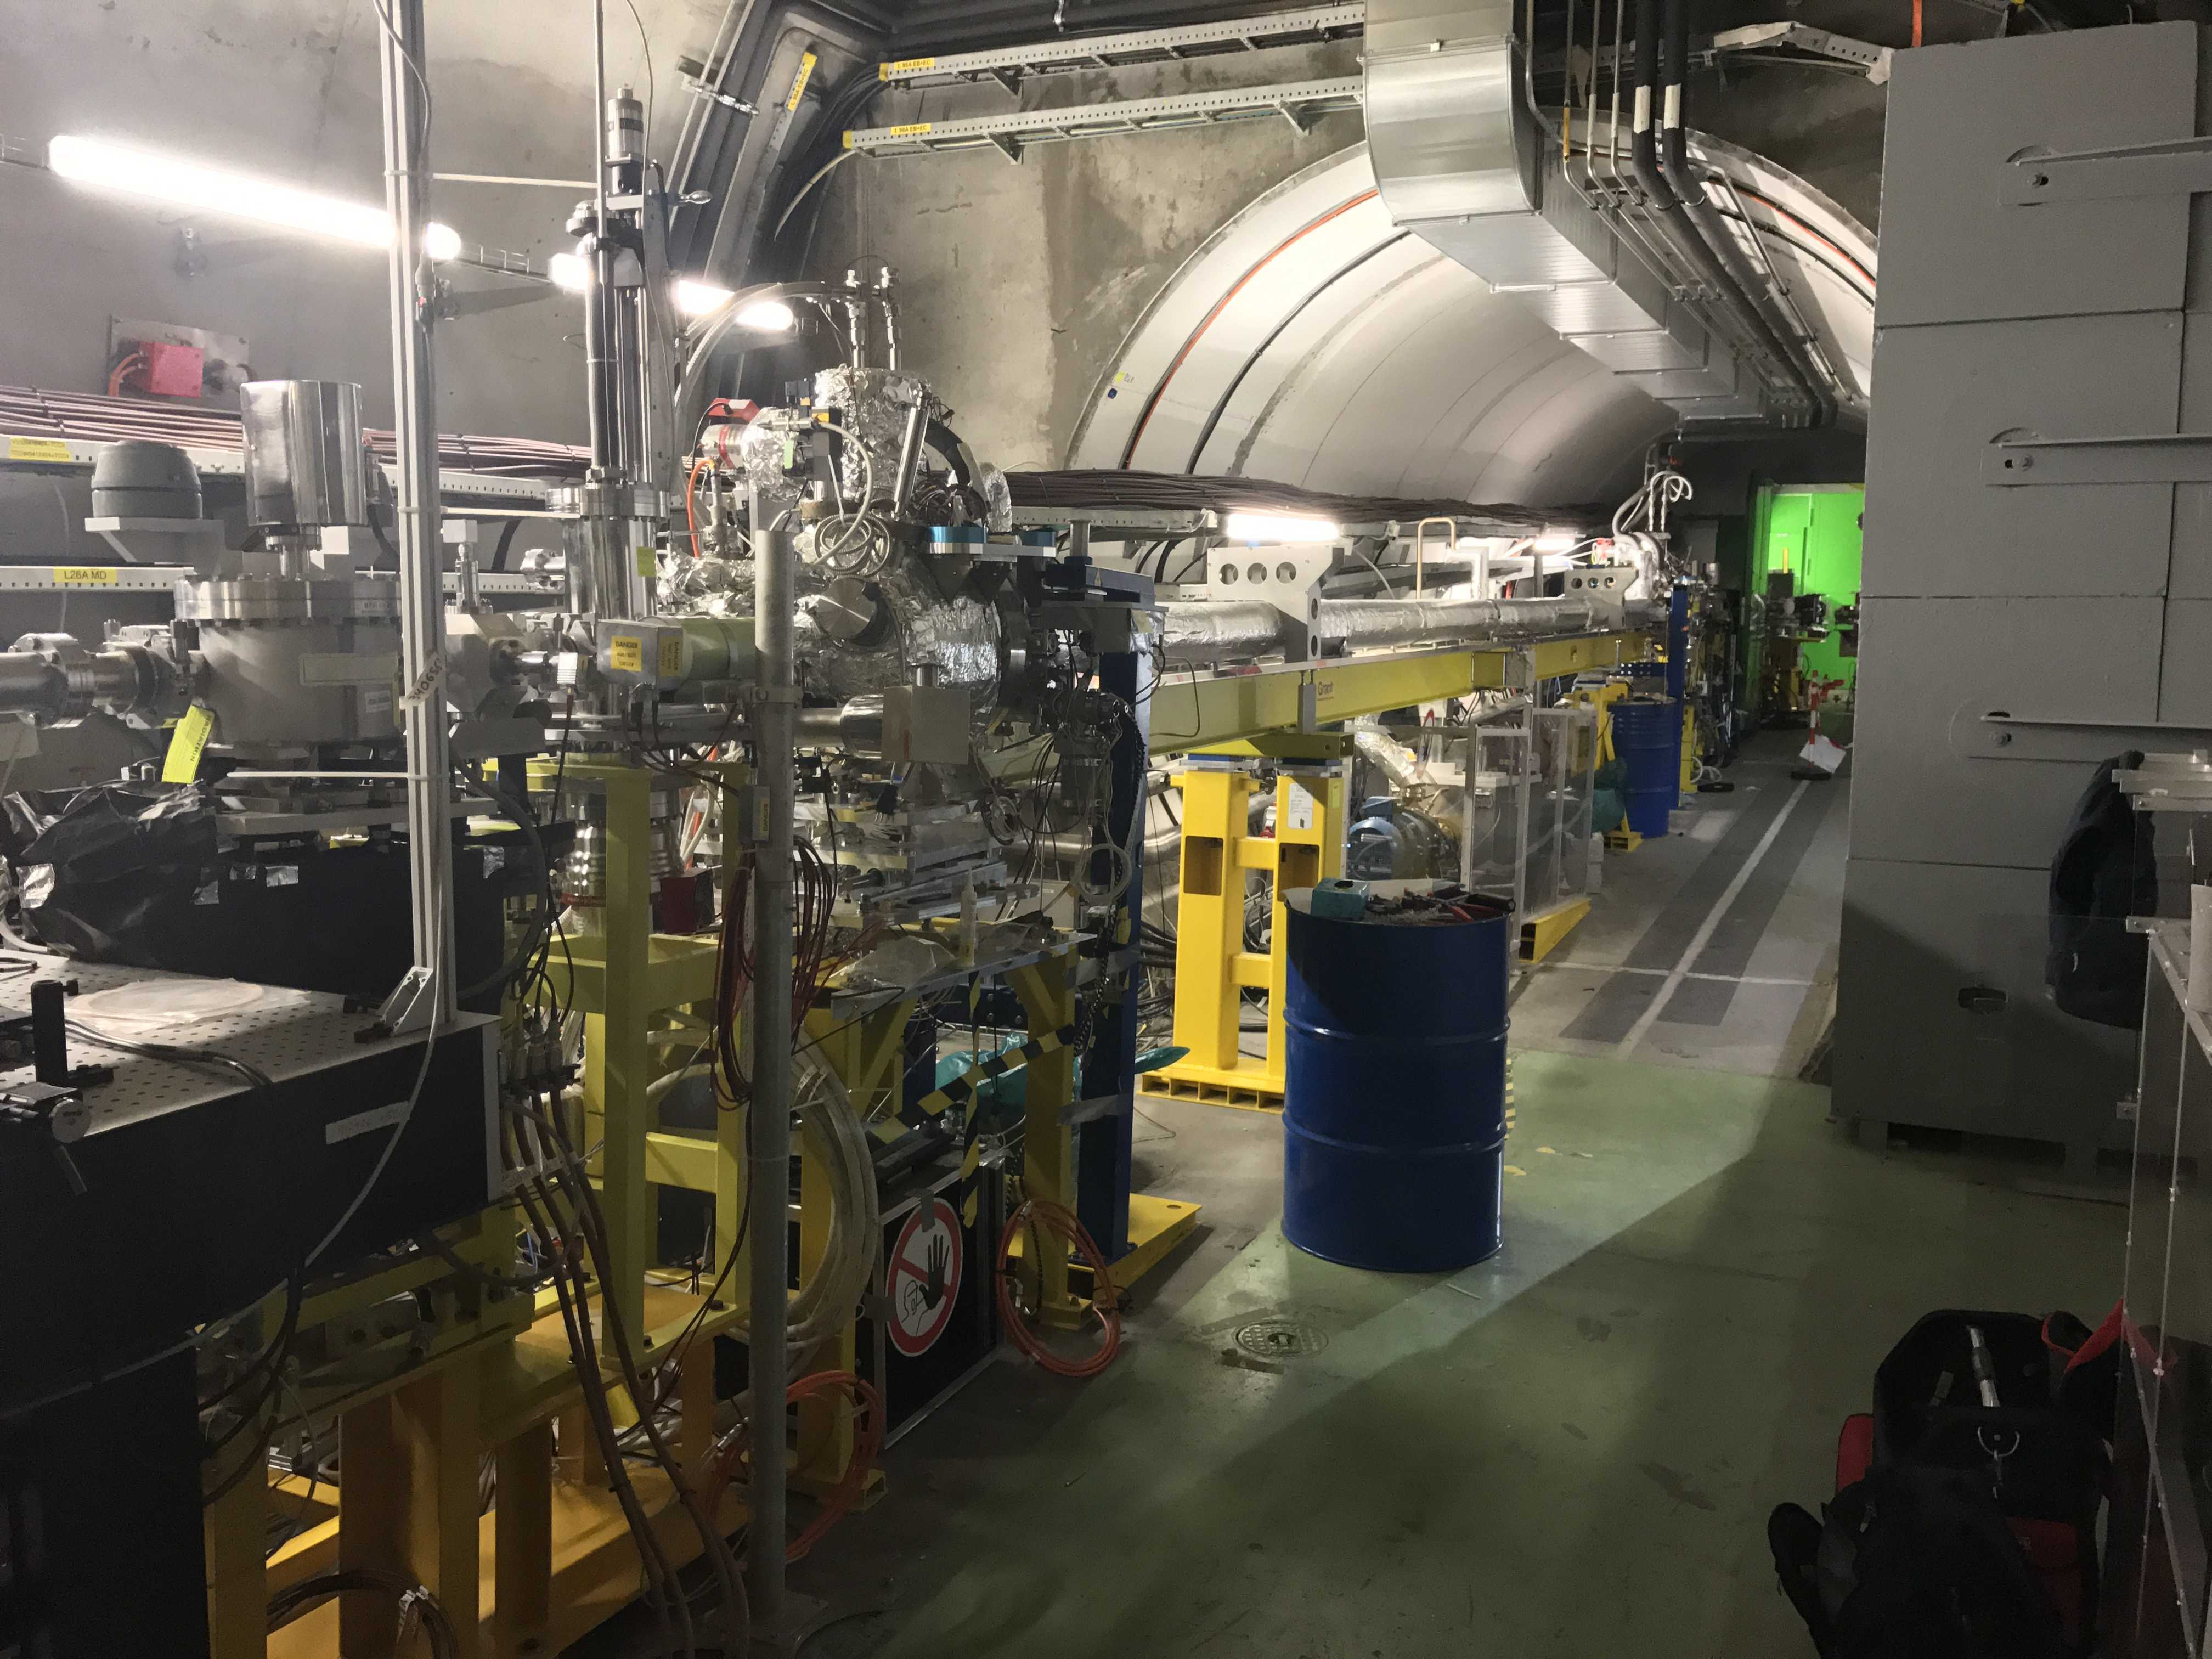 Photo of the AWAKE experiment beamline